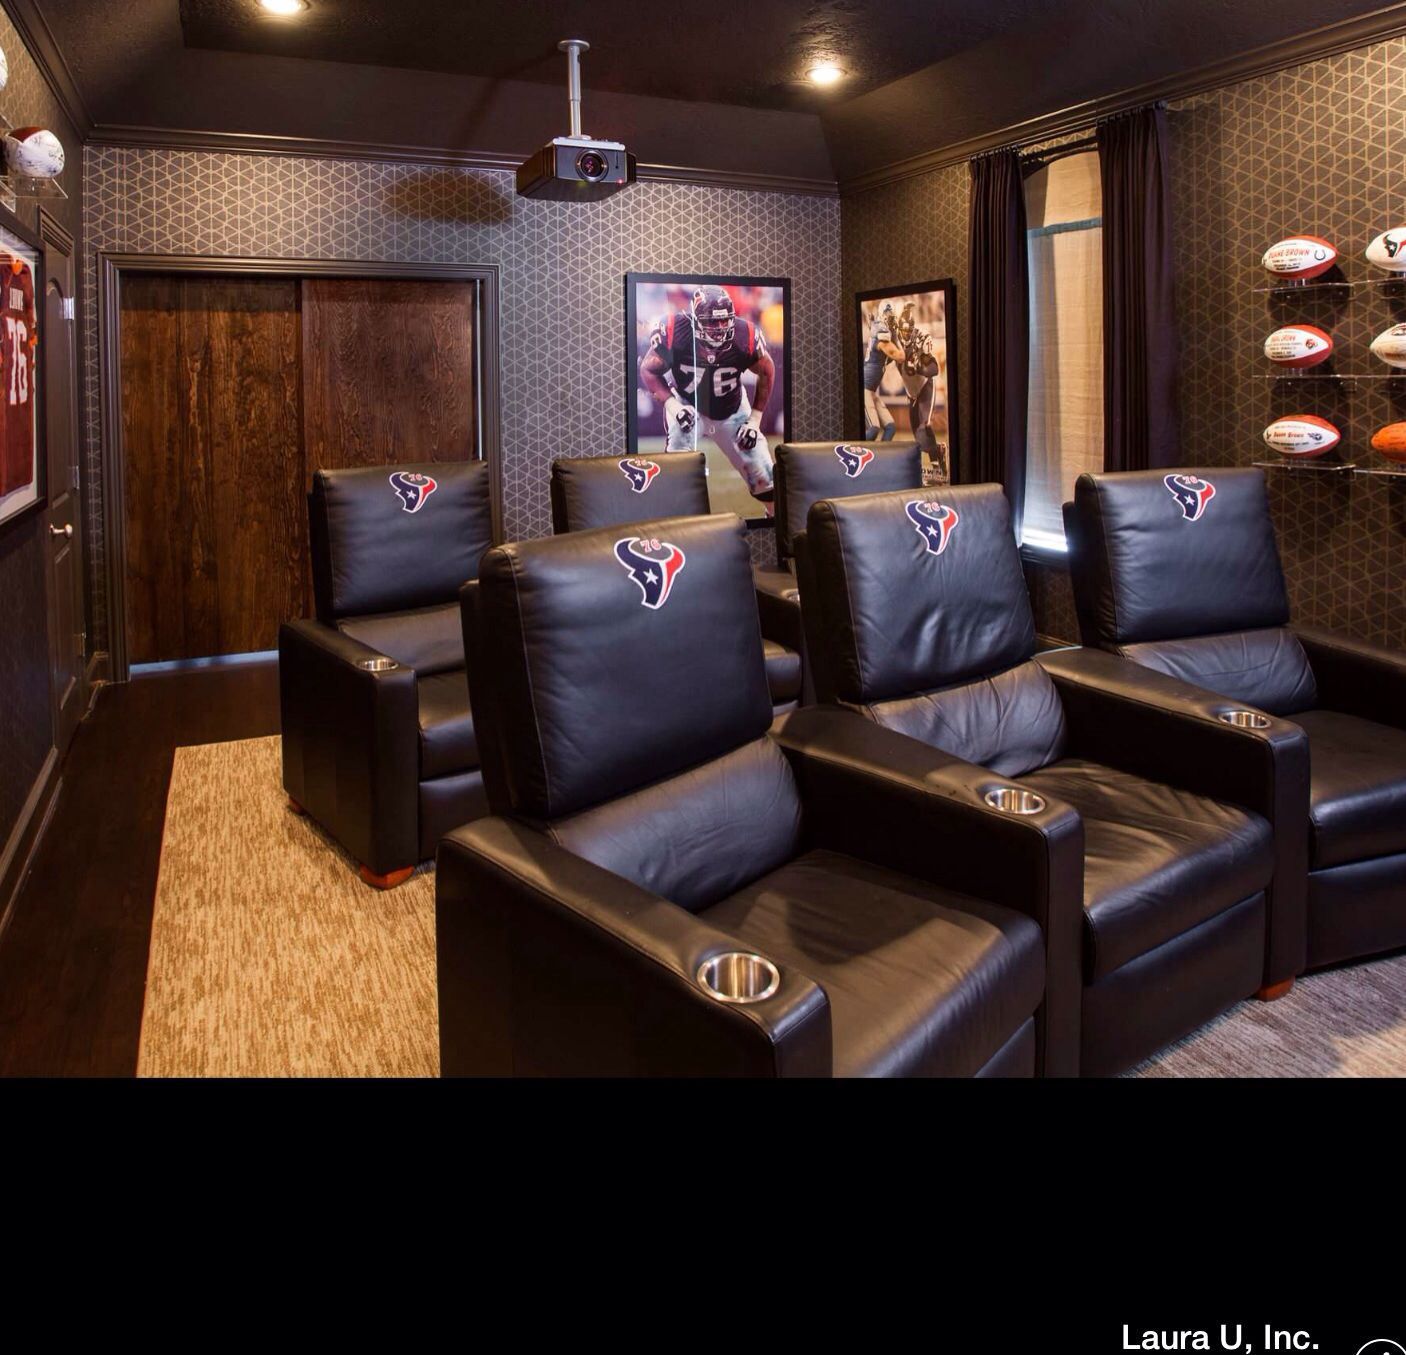 Your Very Own Houston Texans Room